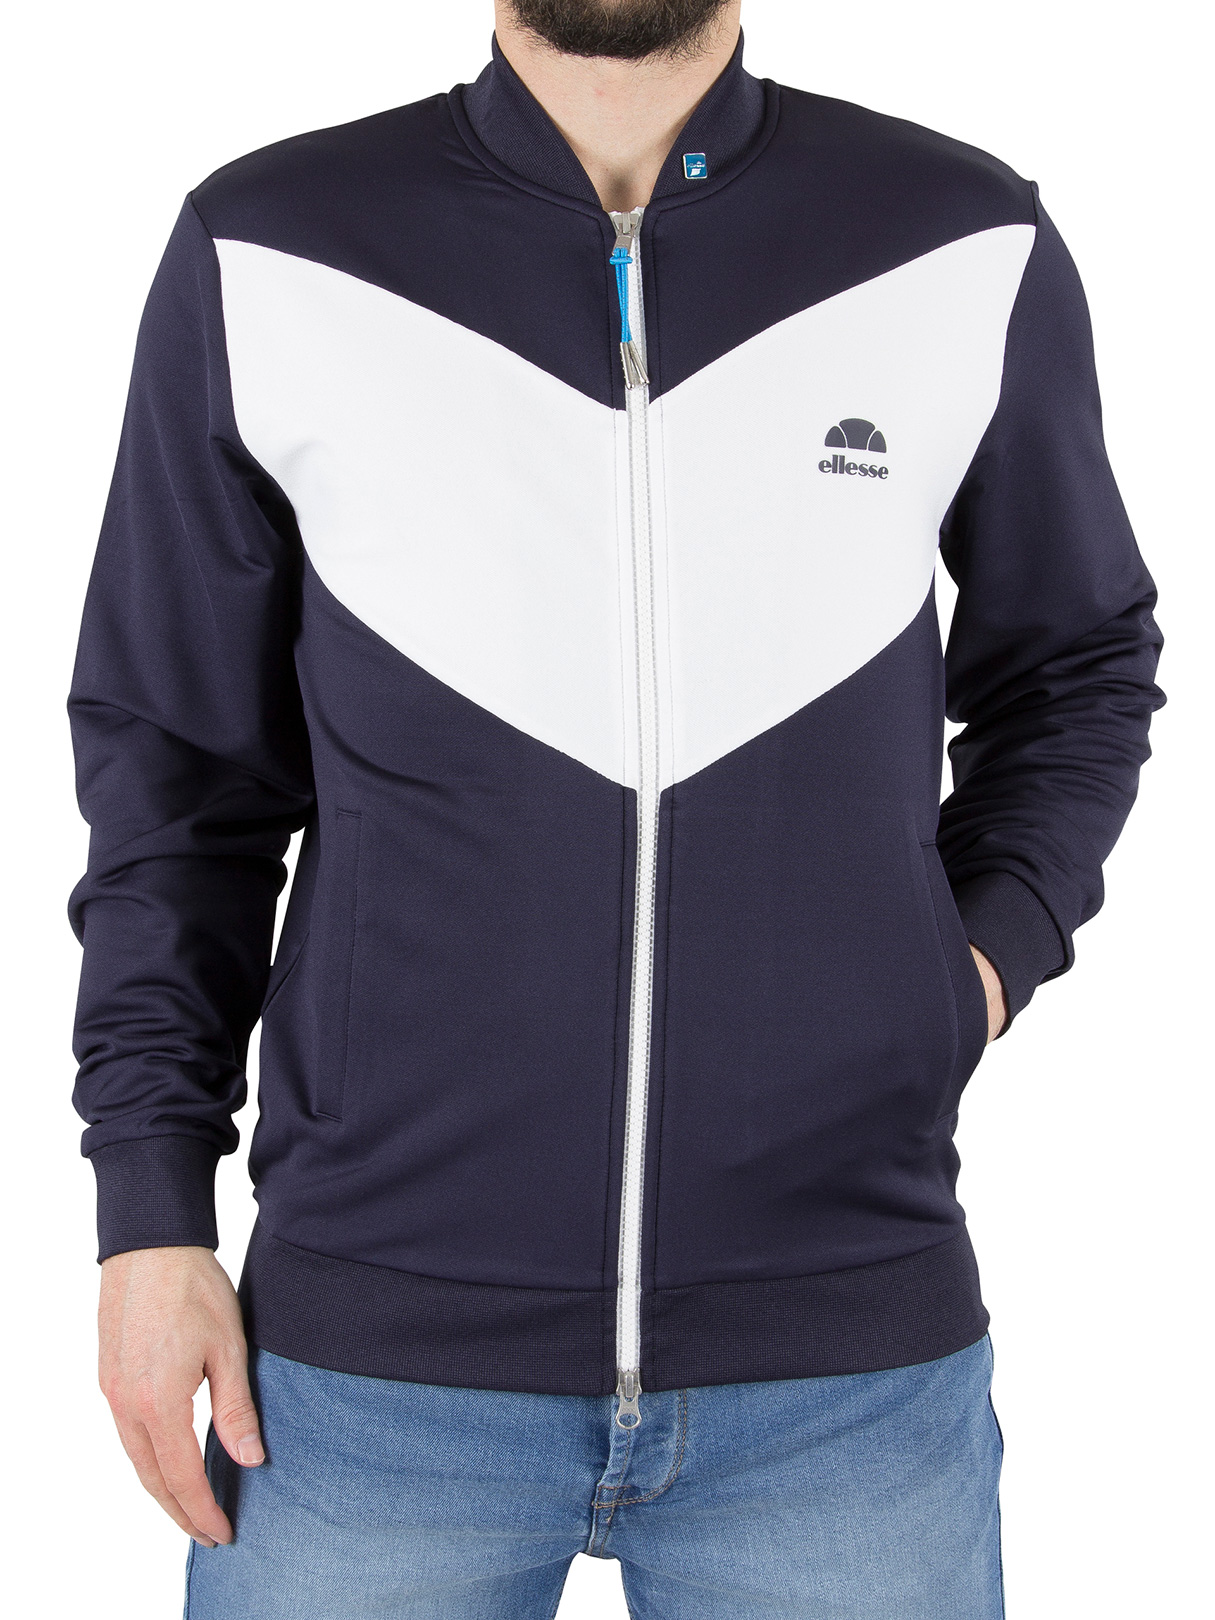 ellesse herren riva jersey logo bomberjacke blau ebay. Black Bedroom Furniture Sets. Home Design Ideas